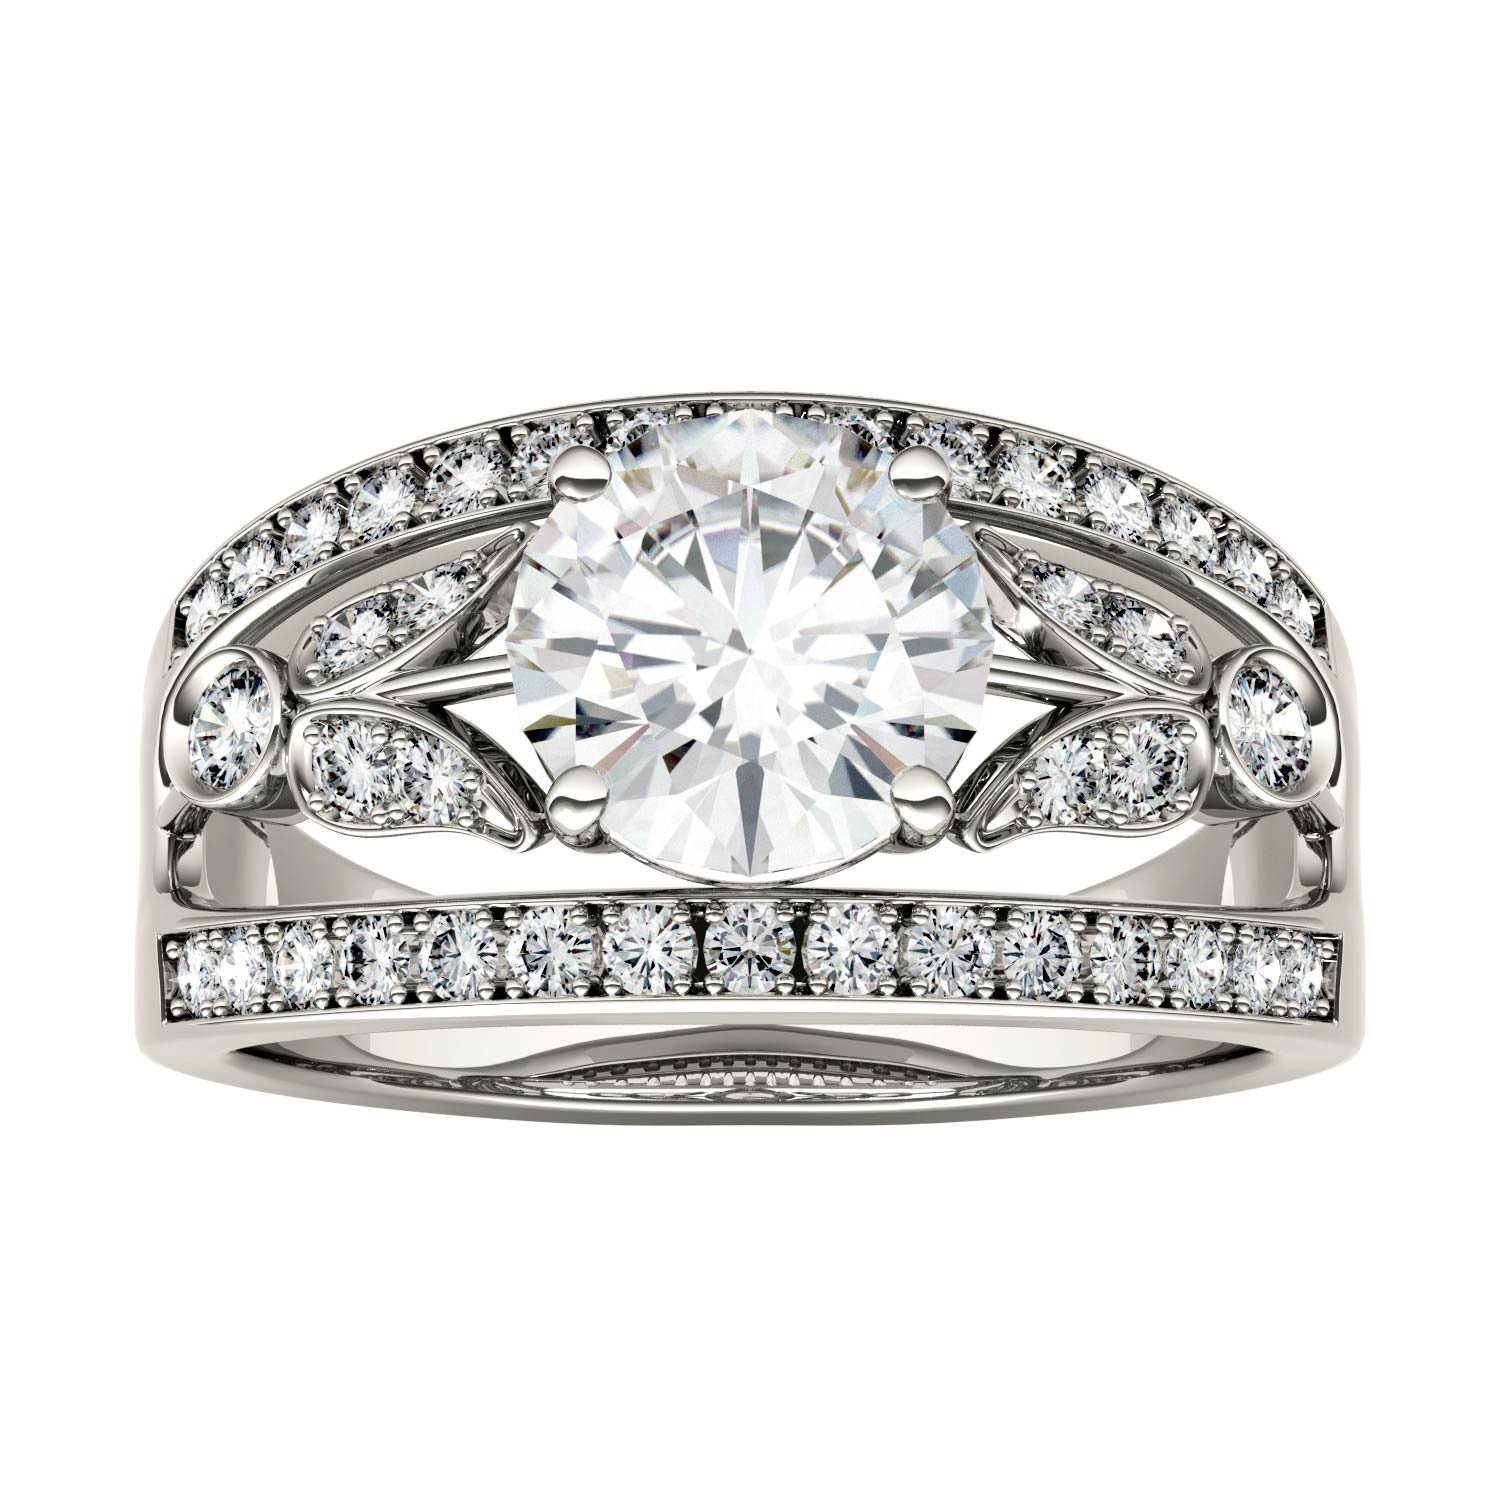 Forever Brilliant Round 7.5mm Moissanite Ring-size 6, 1.91cttw DEW By Charles & Colvard